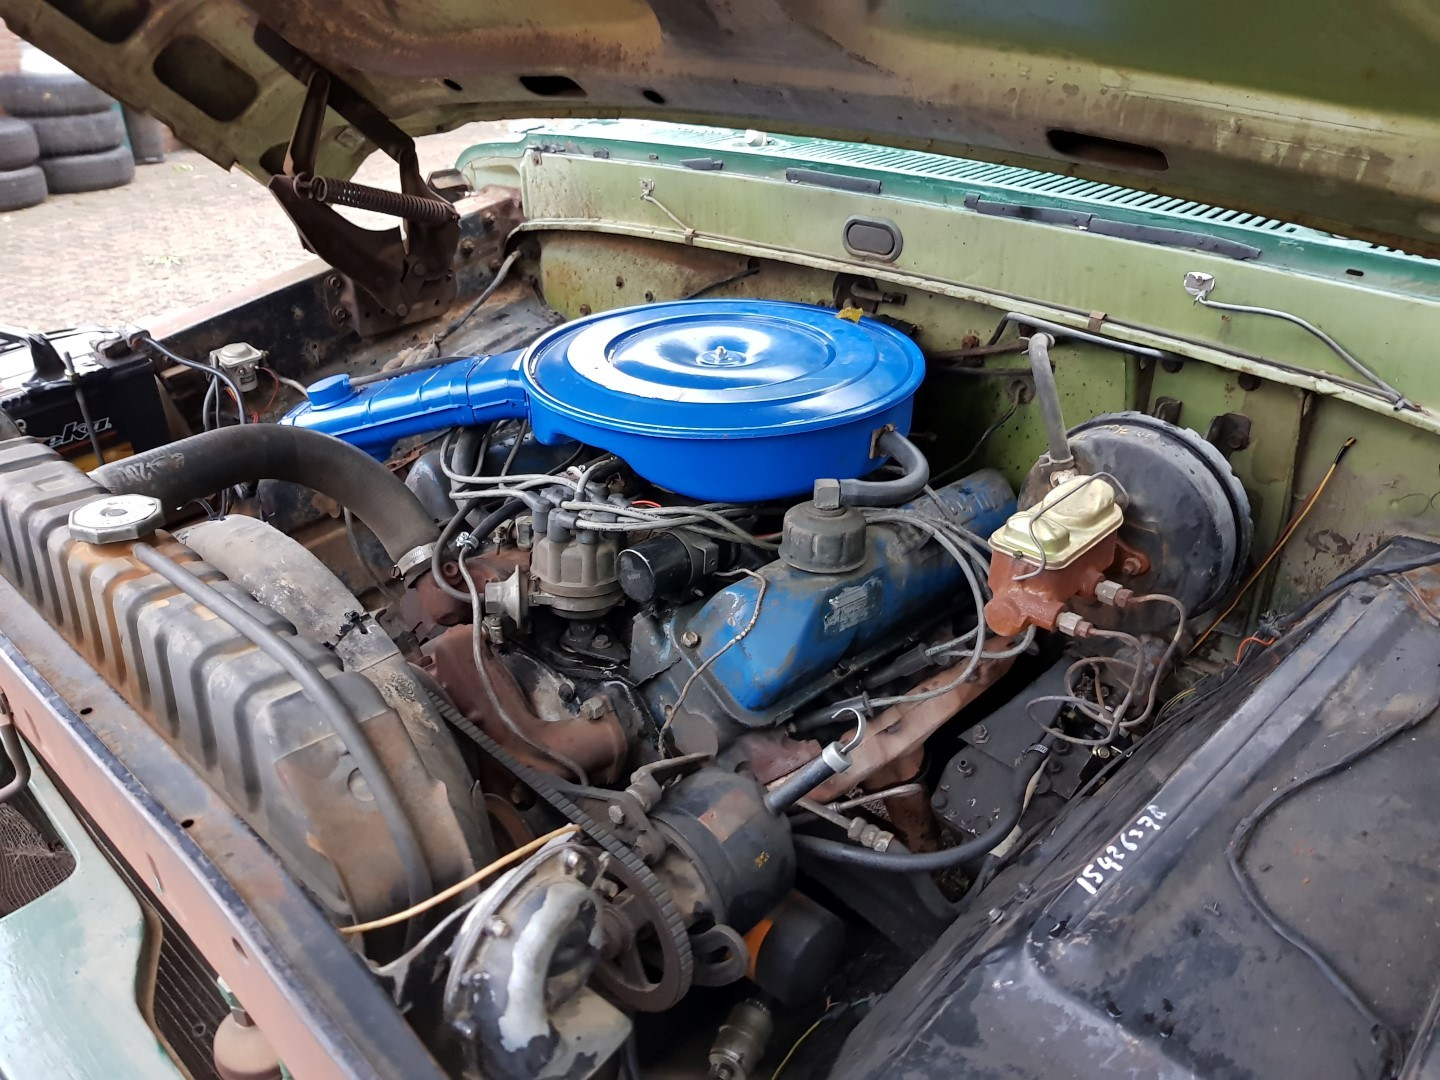 1968 Ford F100 With 390ci Speed Monkey Cars Engine 16